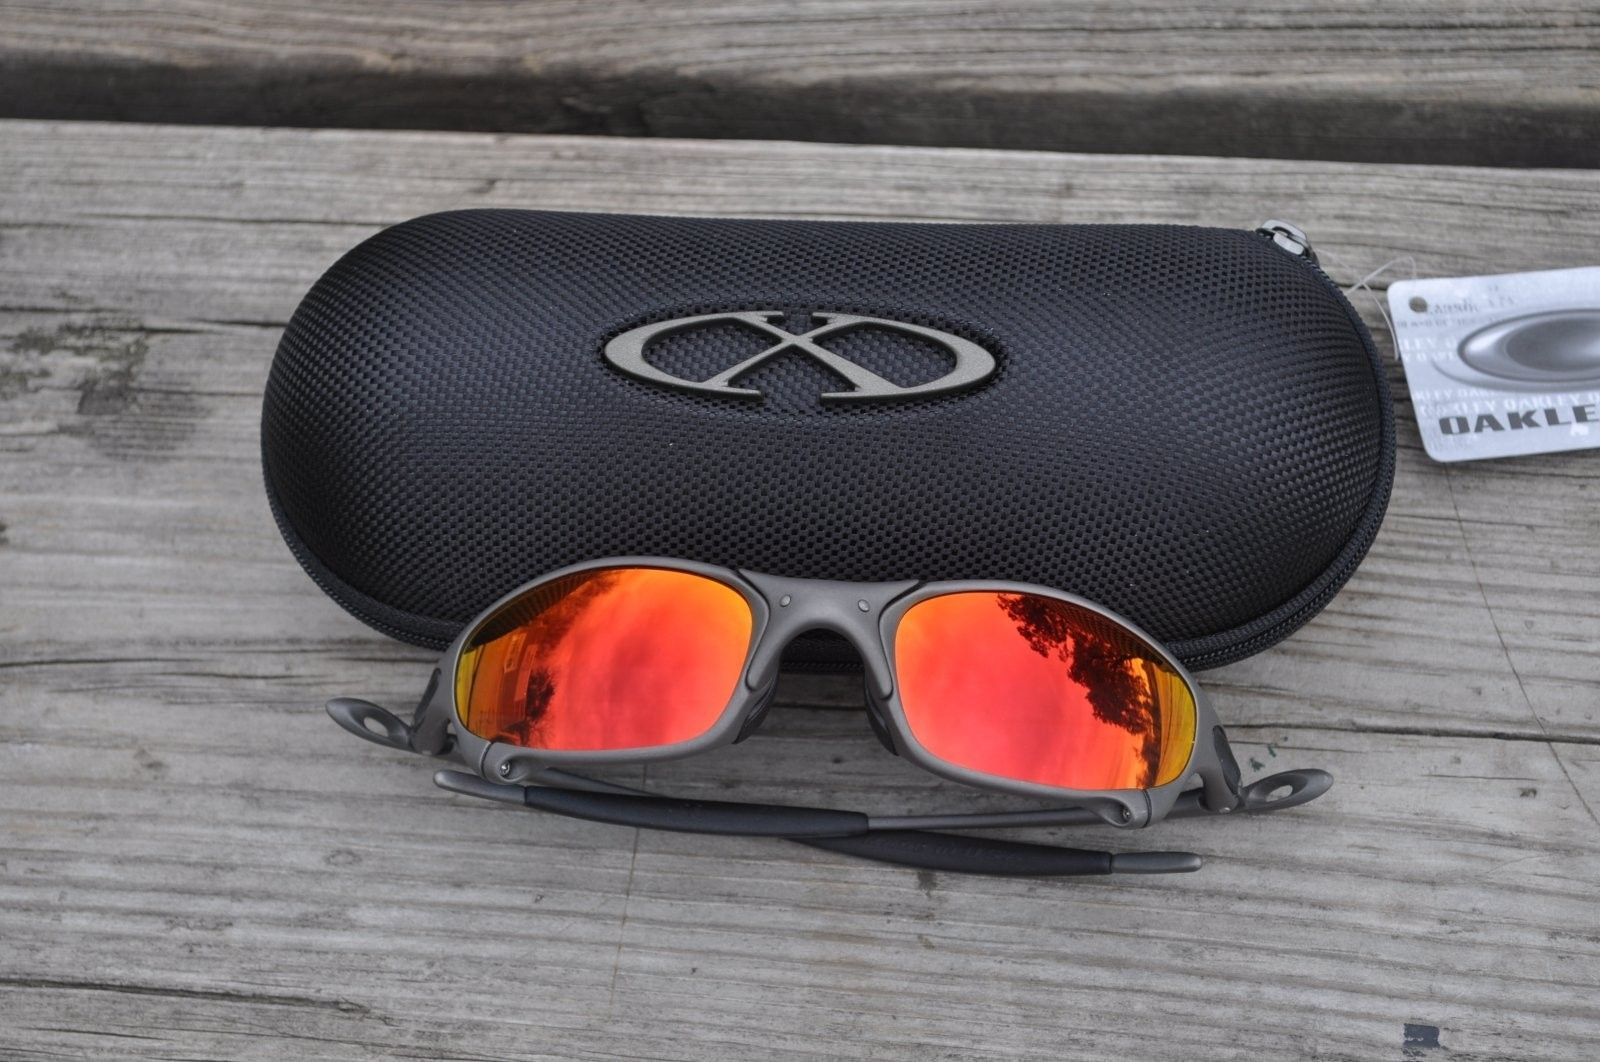 Oakley Olympic Radarlocks and more Purchases 2014 - 1.JPG